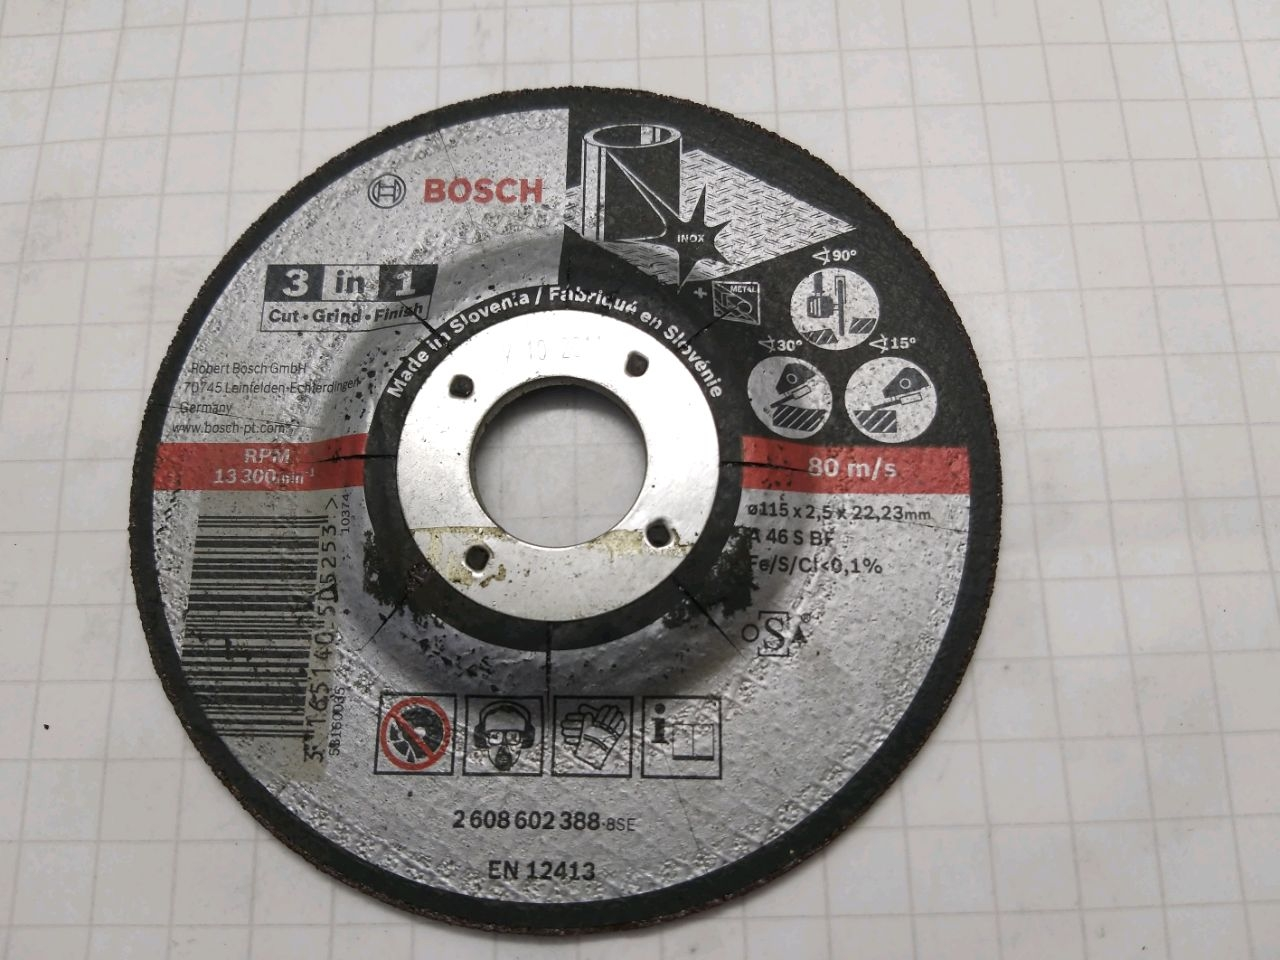 DISC 3 in 1, 115 mm